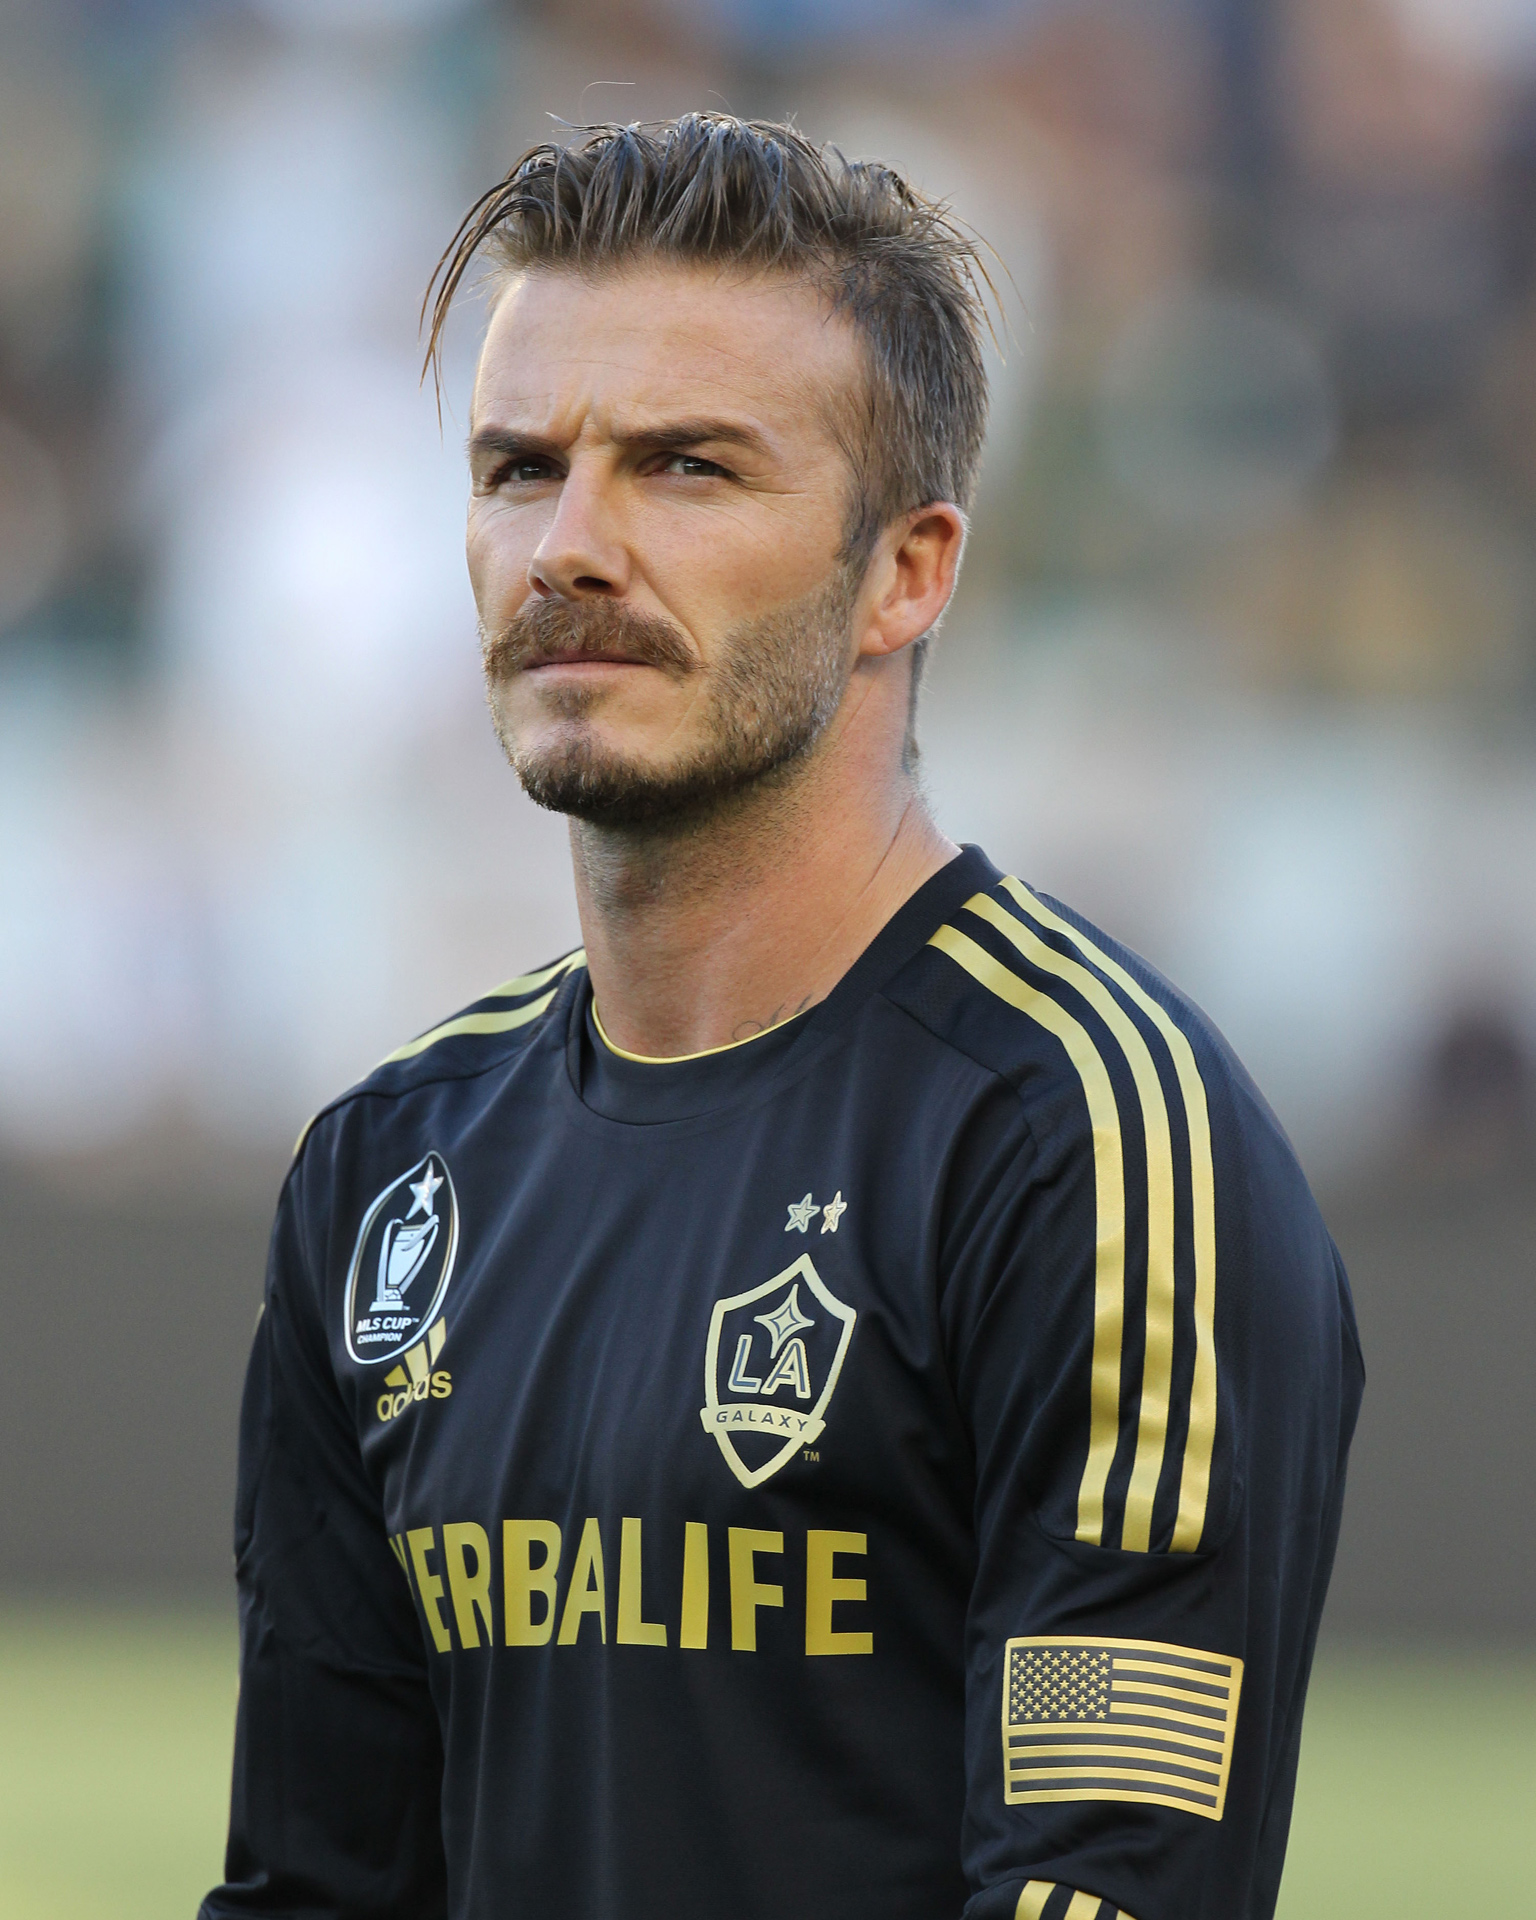 David Beckham LA Galaxy  Whisker Wars Rates Athlete - David Beckham Hairstyles